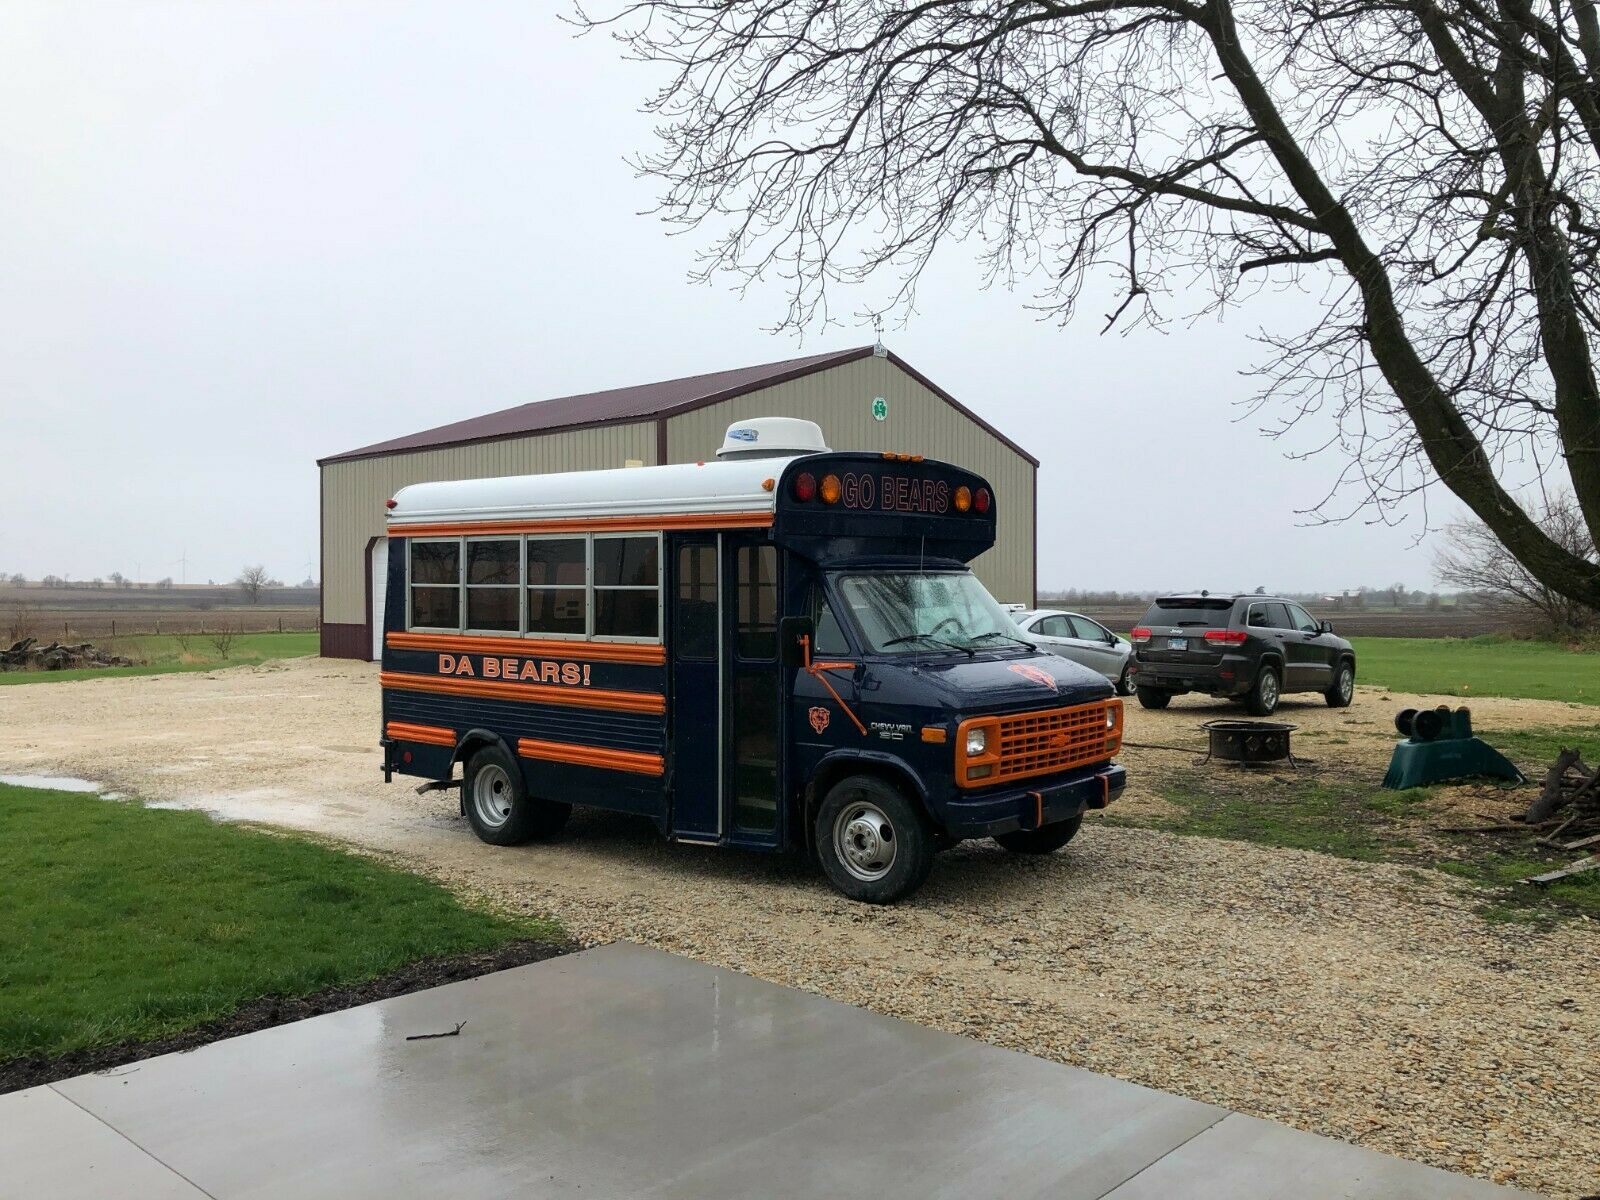 1992 Chevrolet G30 Party Bus